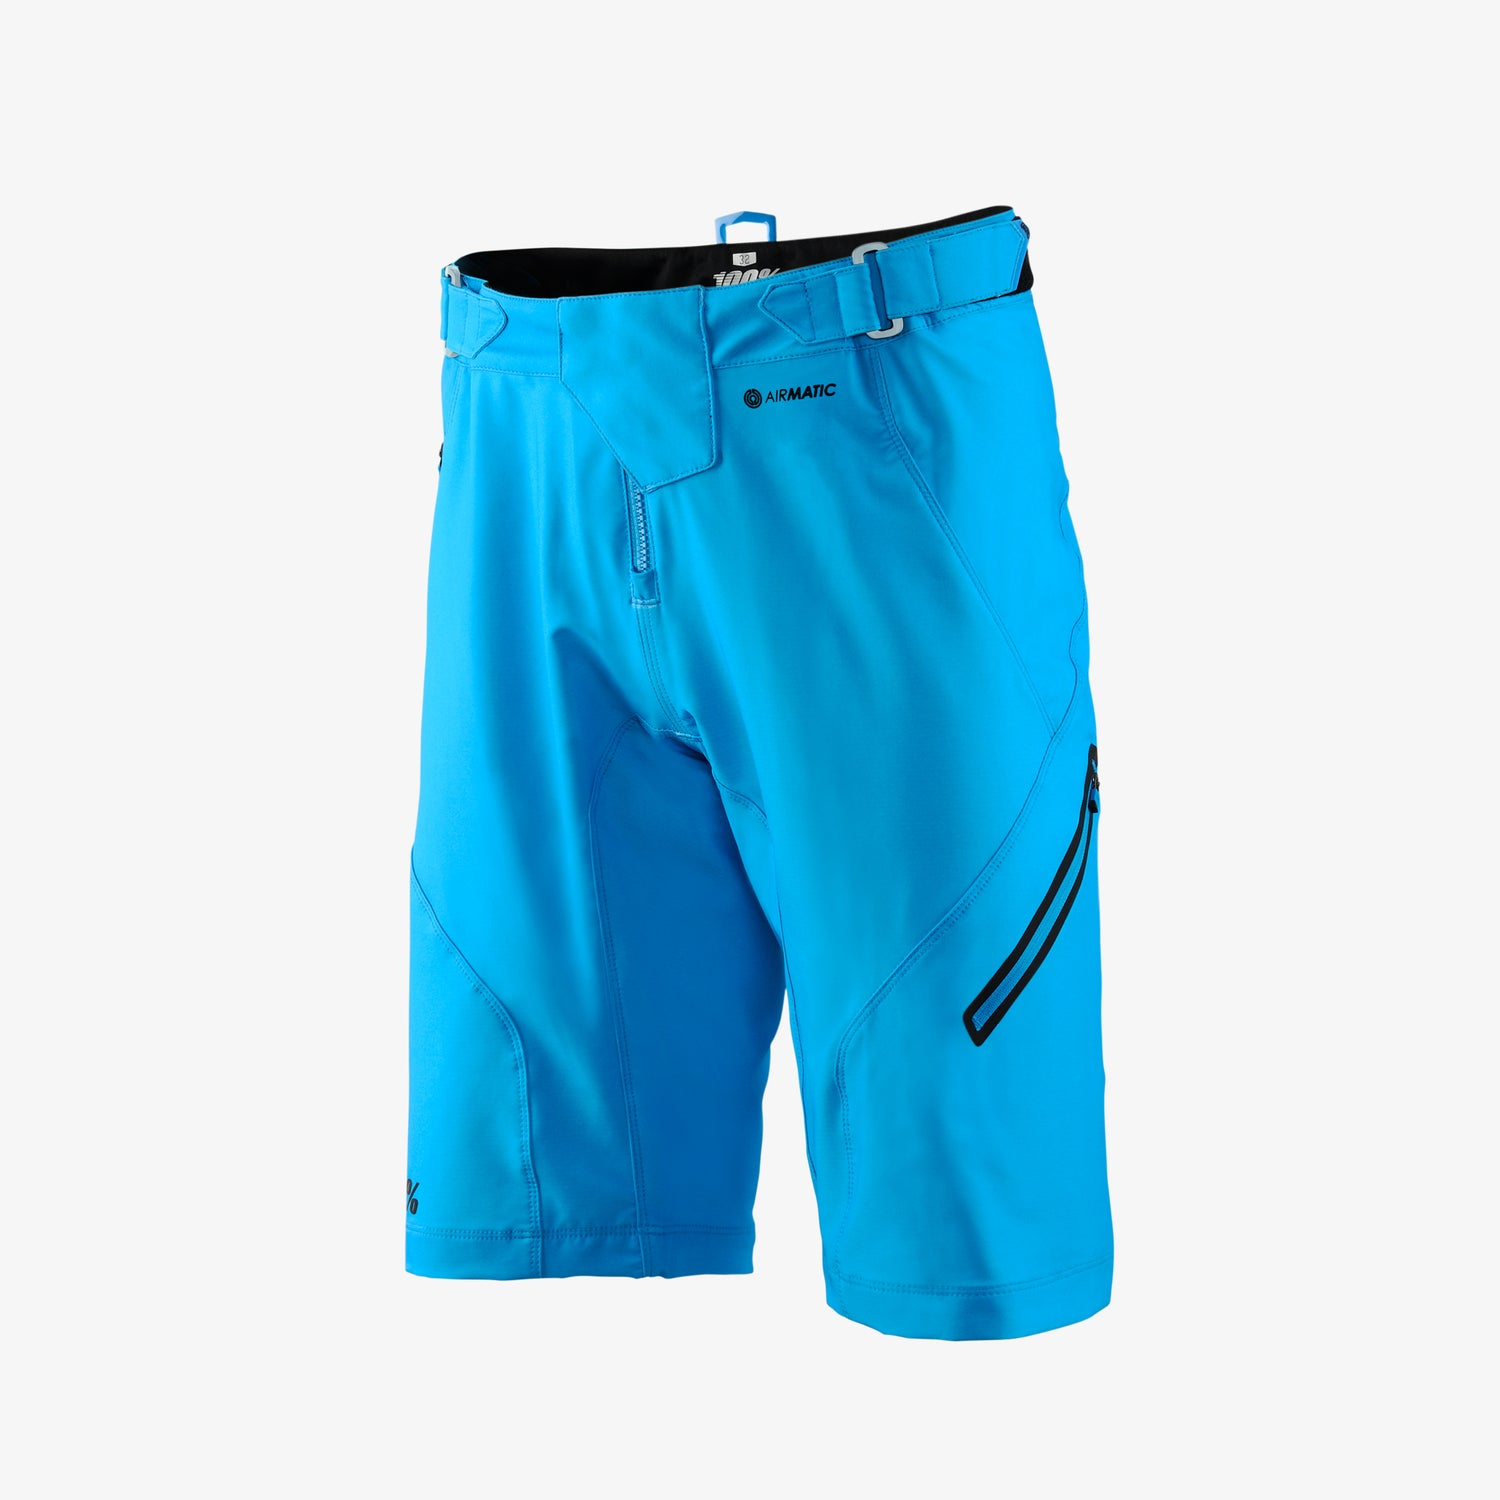 AIRMATIC Shorts - Blue